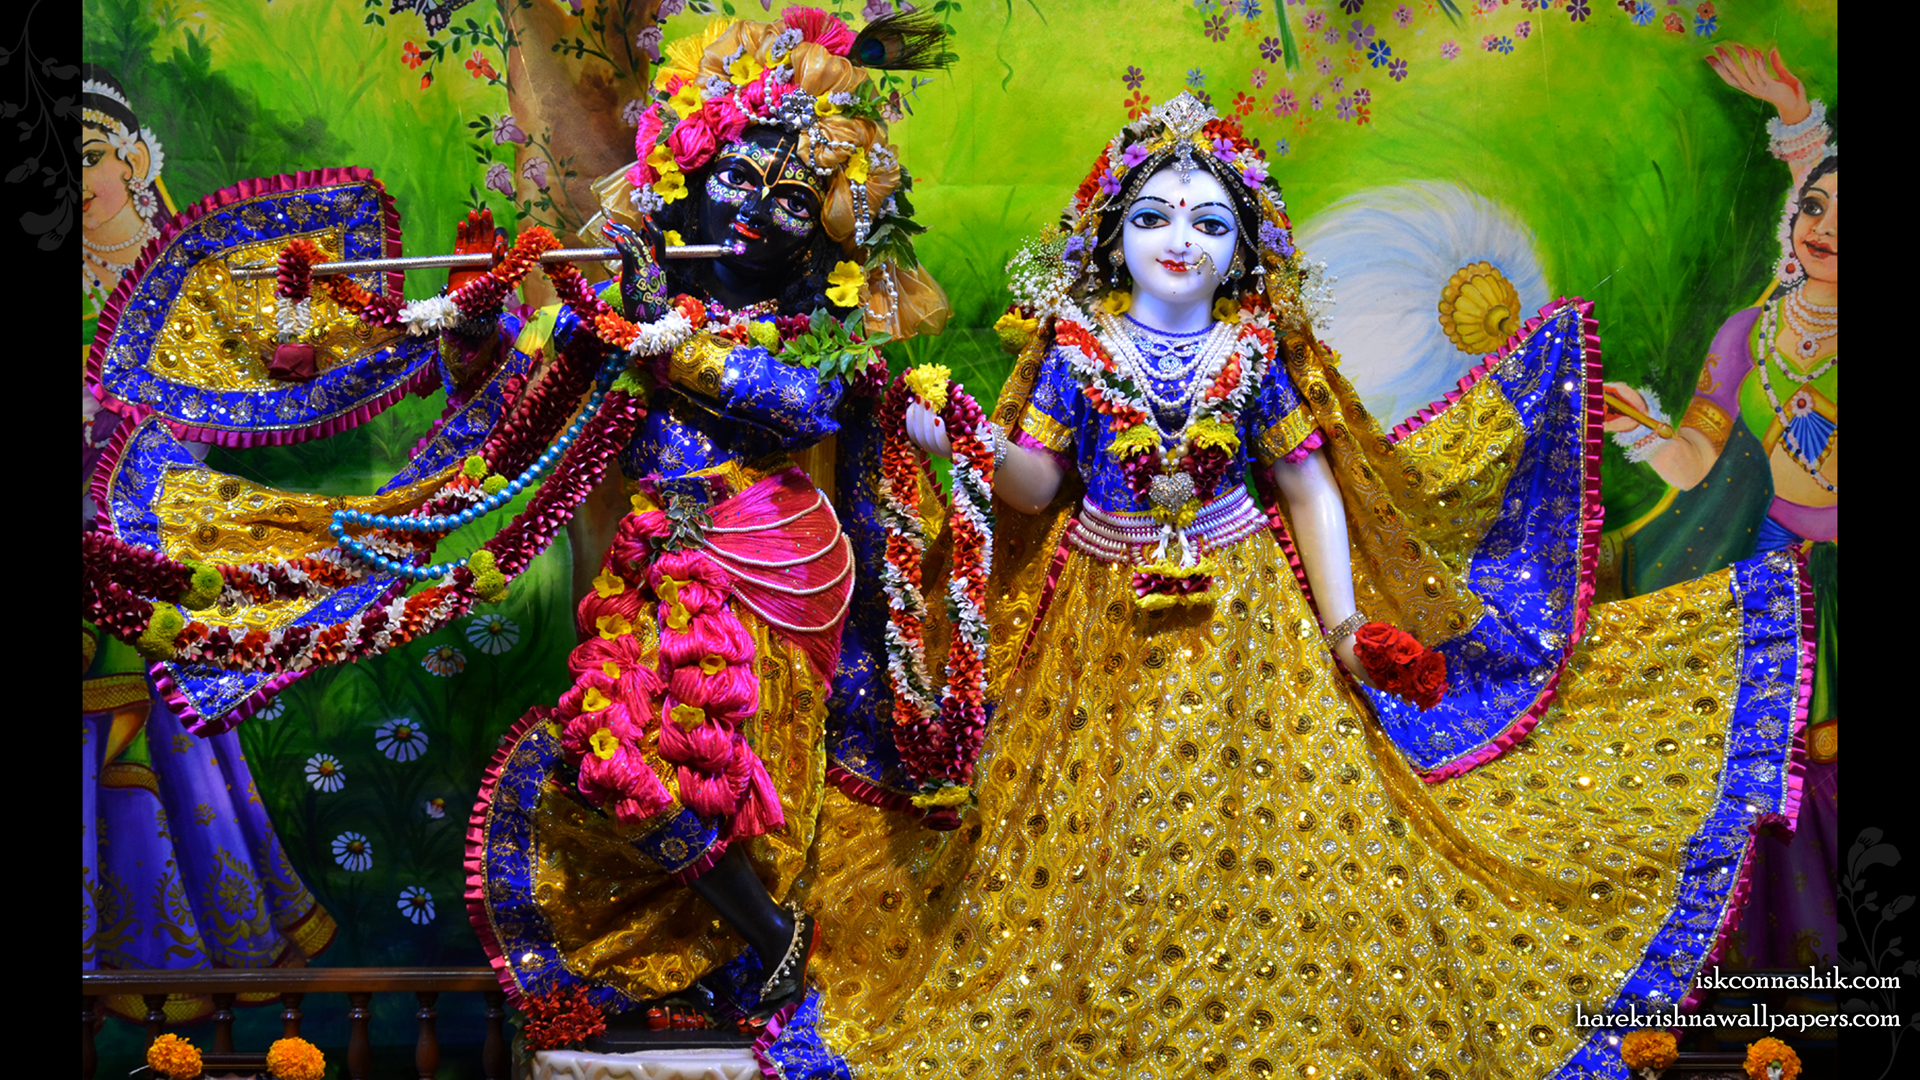 Sri Sri Radha Madan Gopal Wallpaper (018) Size 1920x1080 Download